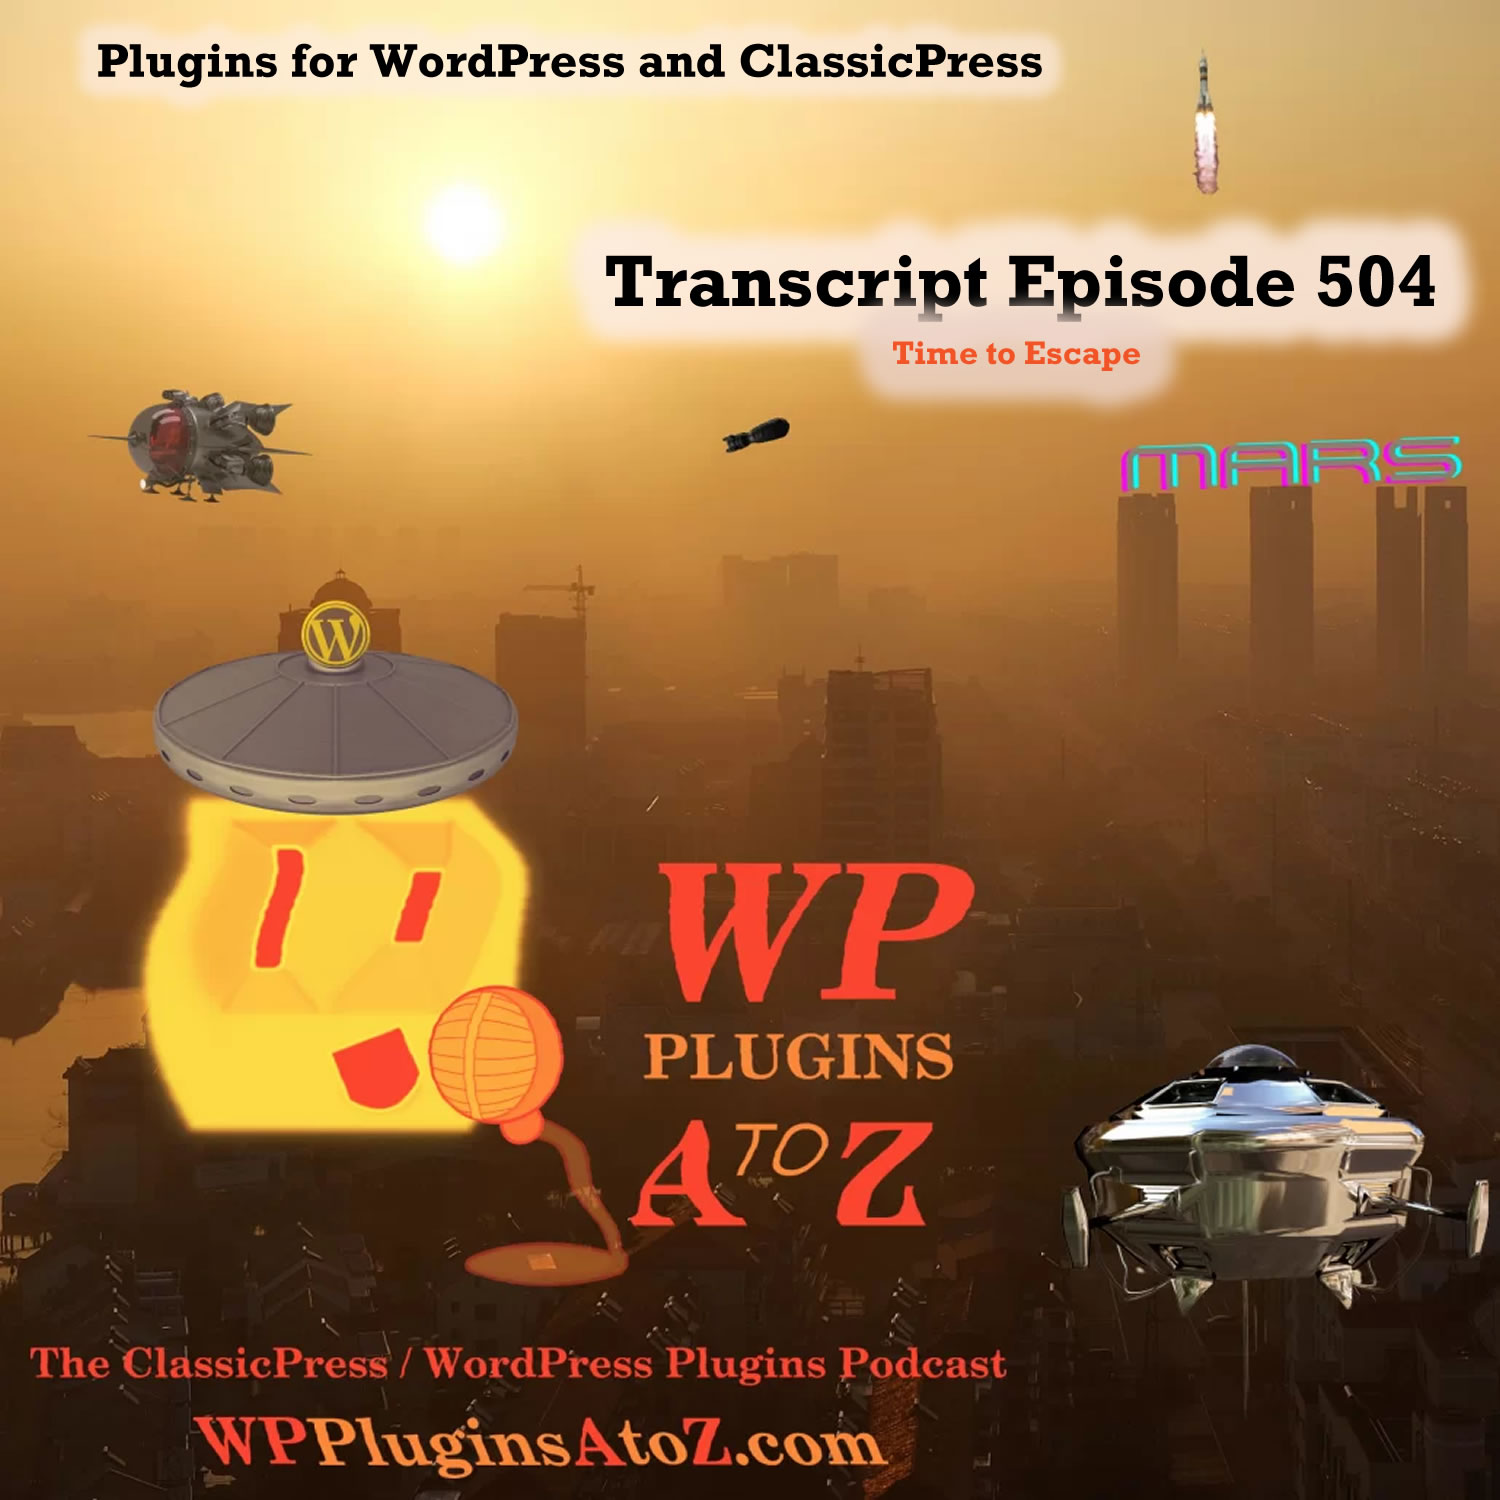 Time to Escape It's Episode 504 - We have plugins for Crypto, Duplication, Donations, Cookies, Videos....., and ClassicPress Options. It's all coming up on WordPress Plugins A-Z!